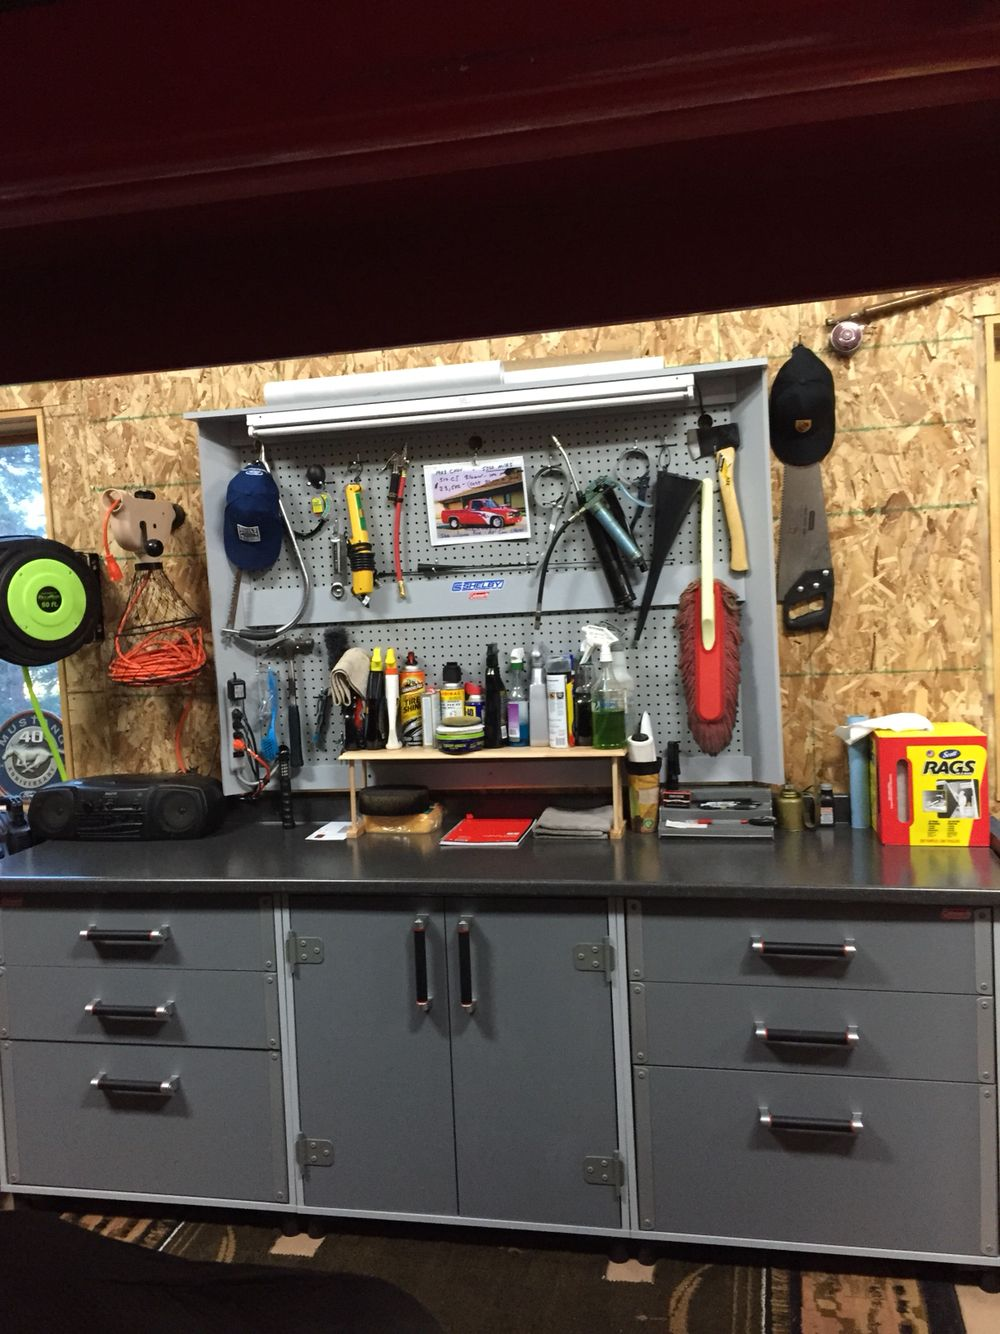 Tuff Duty Coleman Workbench: One 2 Door Base Cabinet, 2 Three Drawer Base  Cabinets